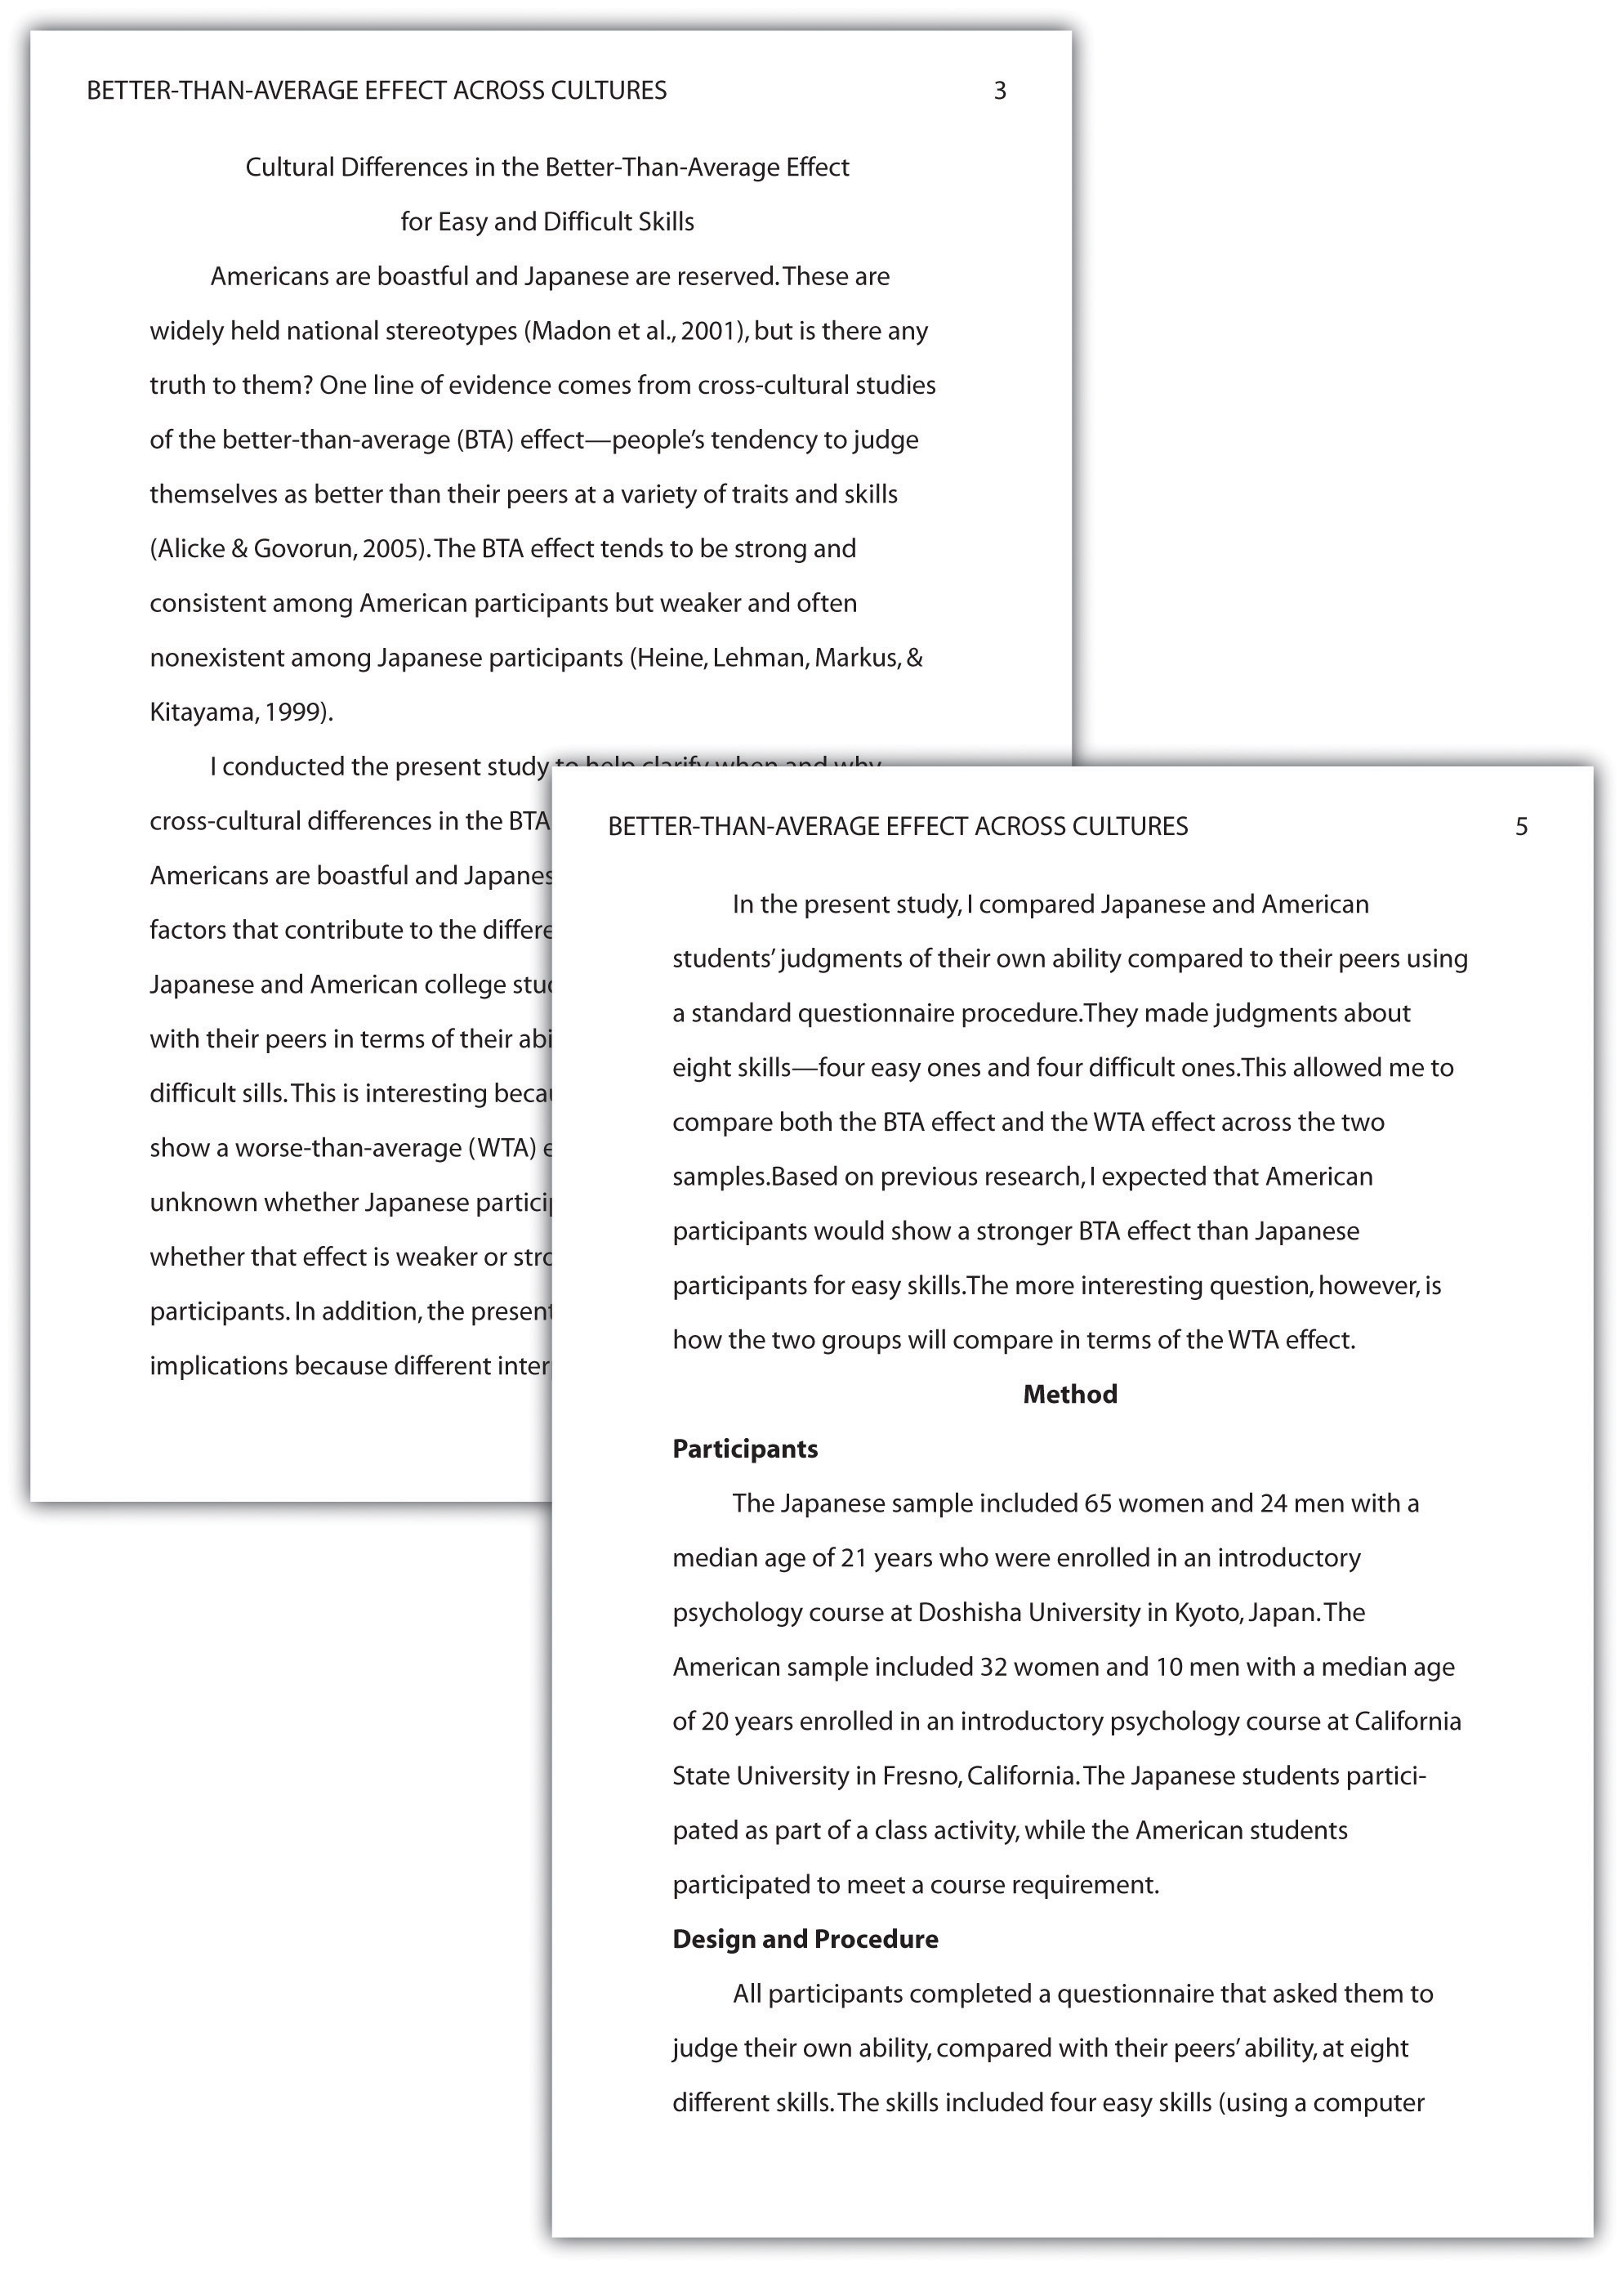 Apa format version 6 template ccuart Image collections